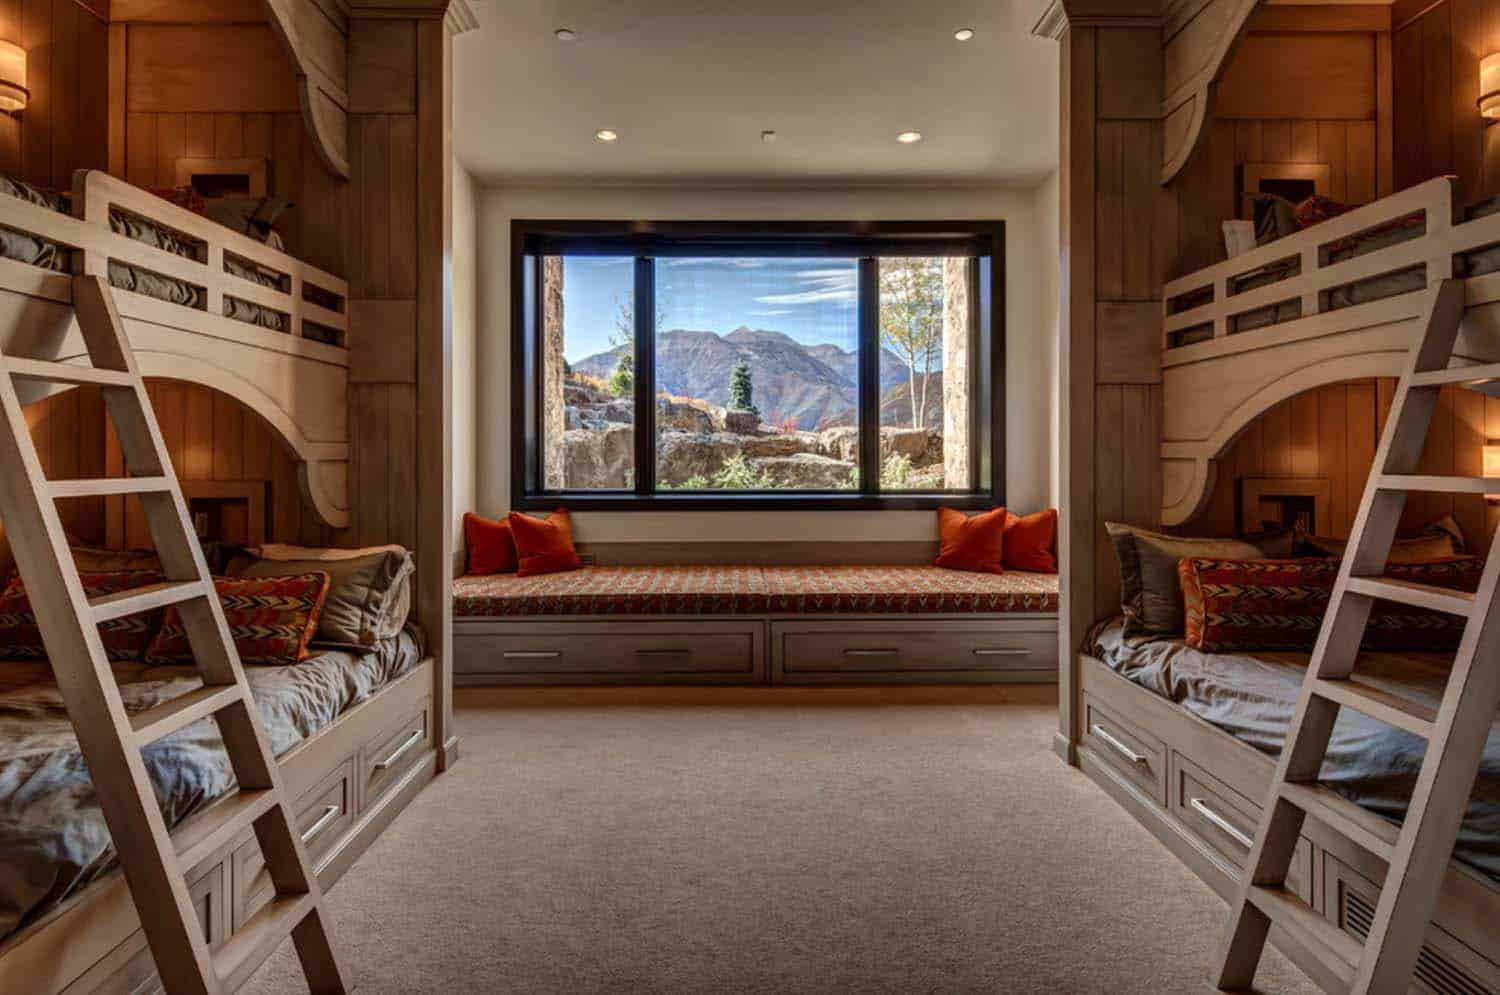 Utah Mountain Residence-Upwall Design-21-1 Kindesign